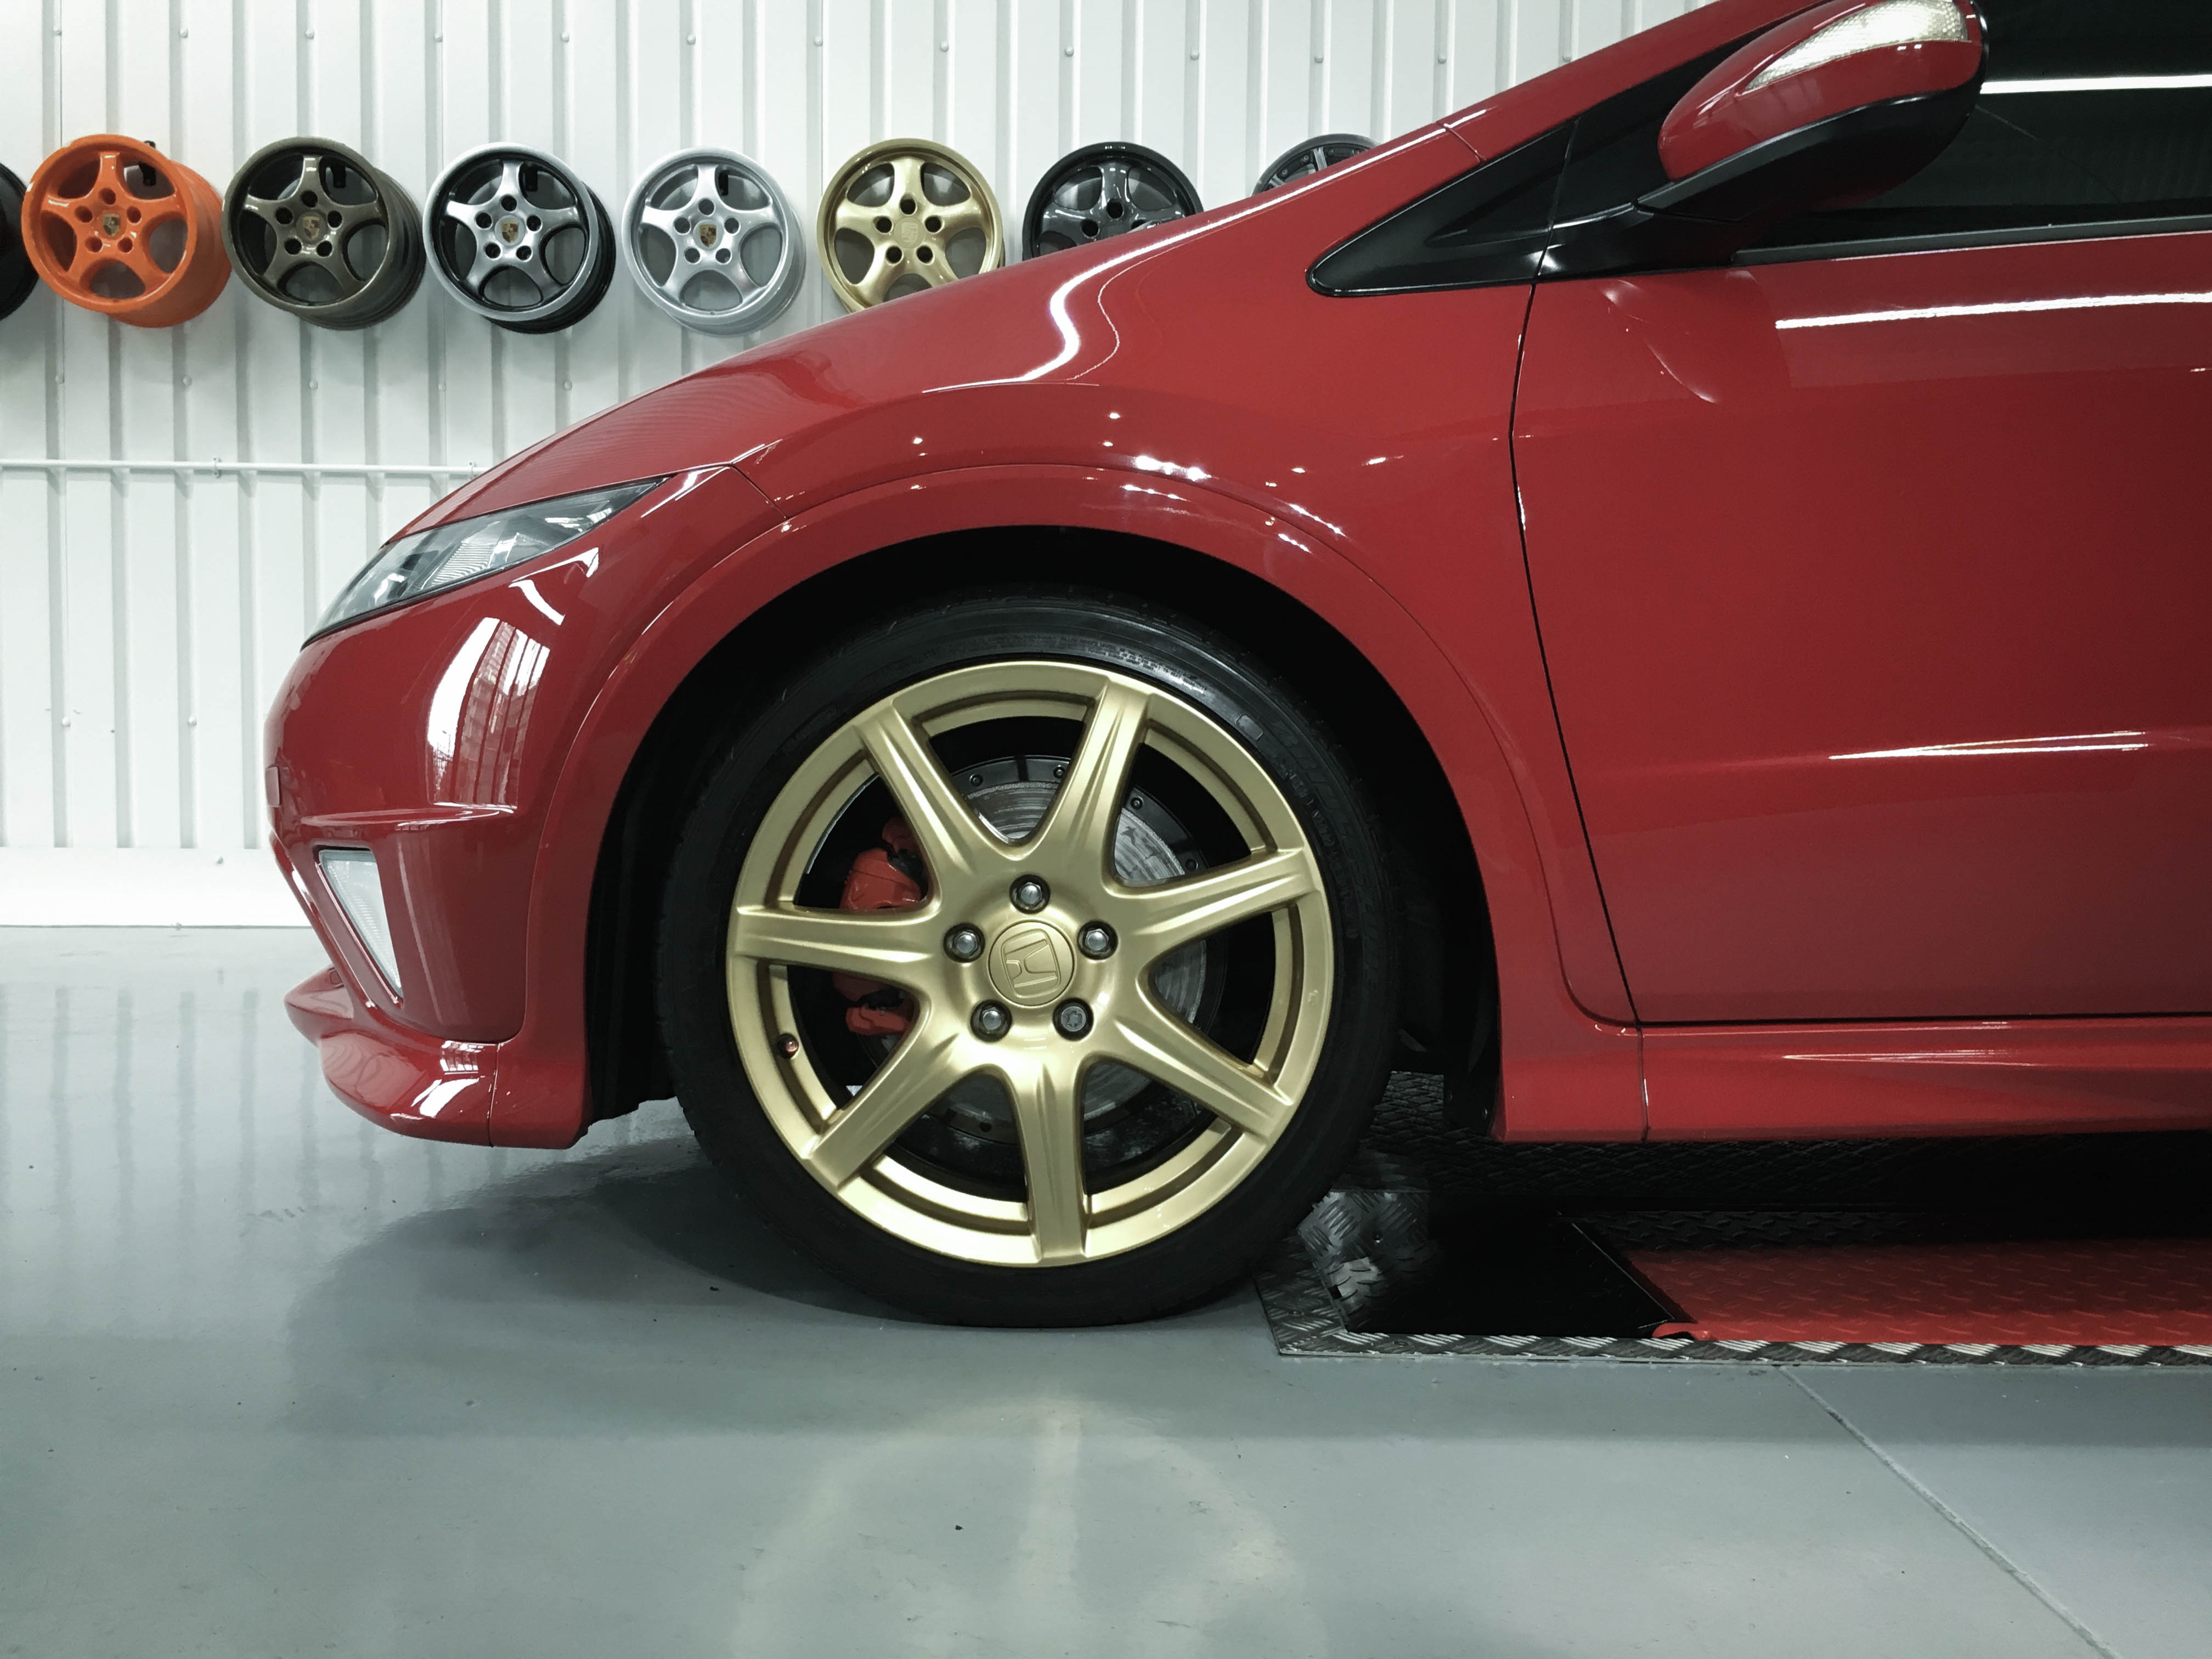 Honda Civic TypeR – Wheel